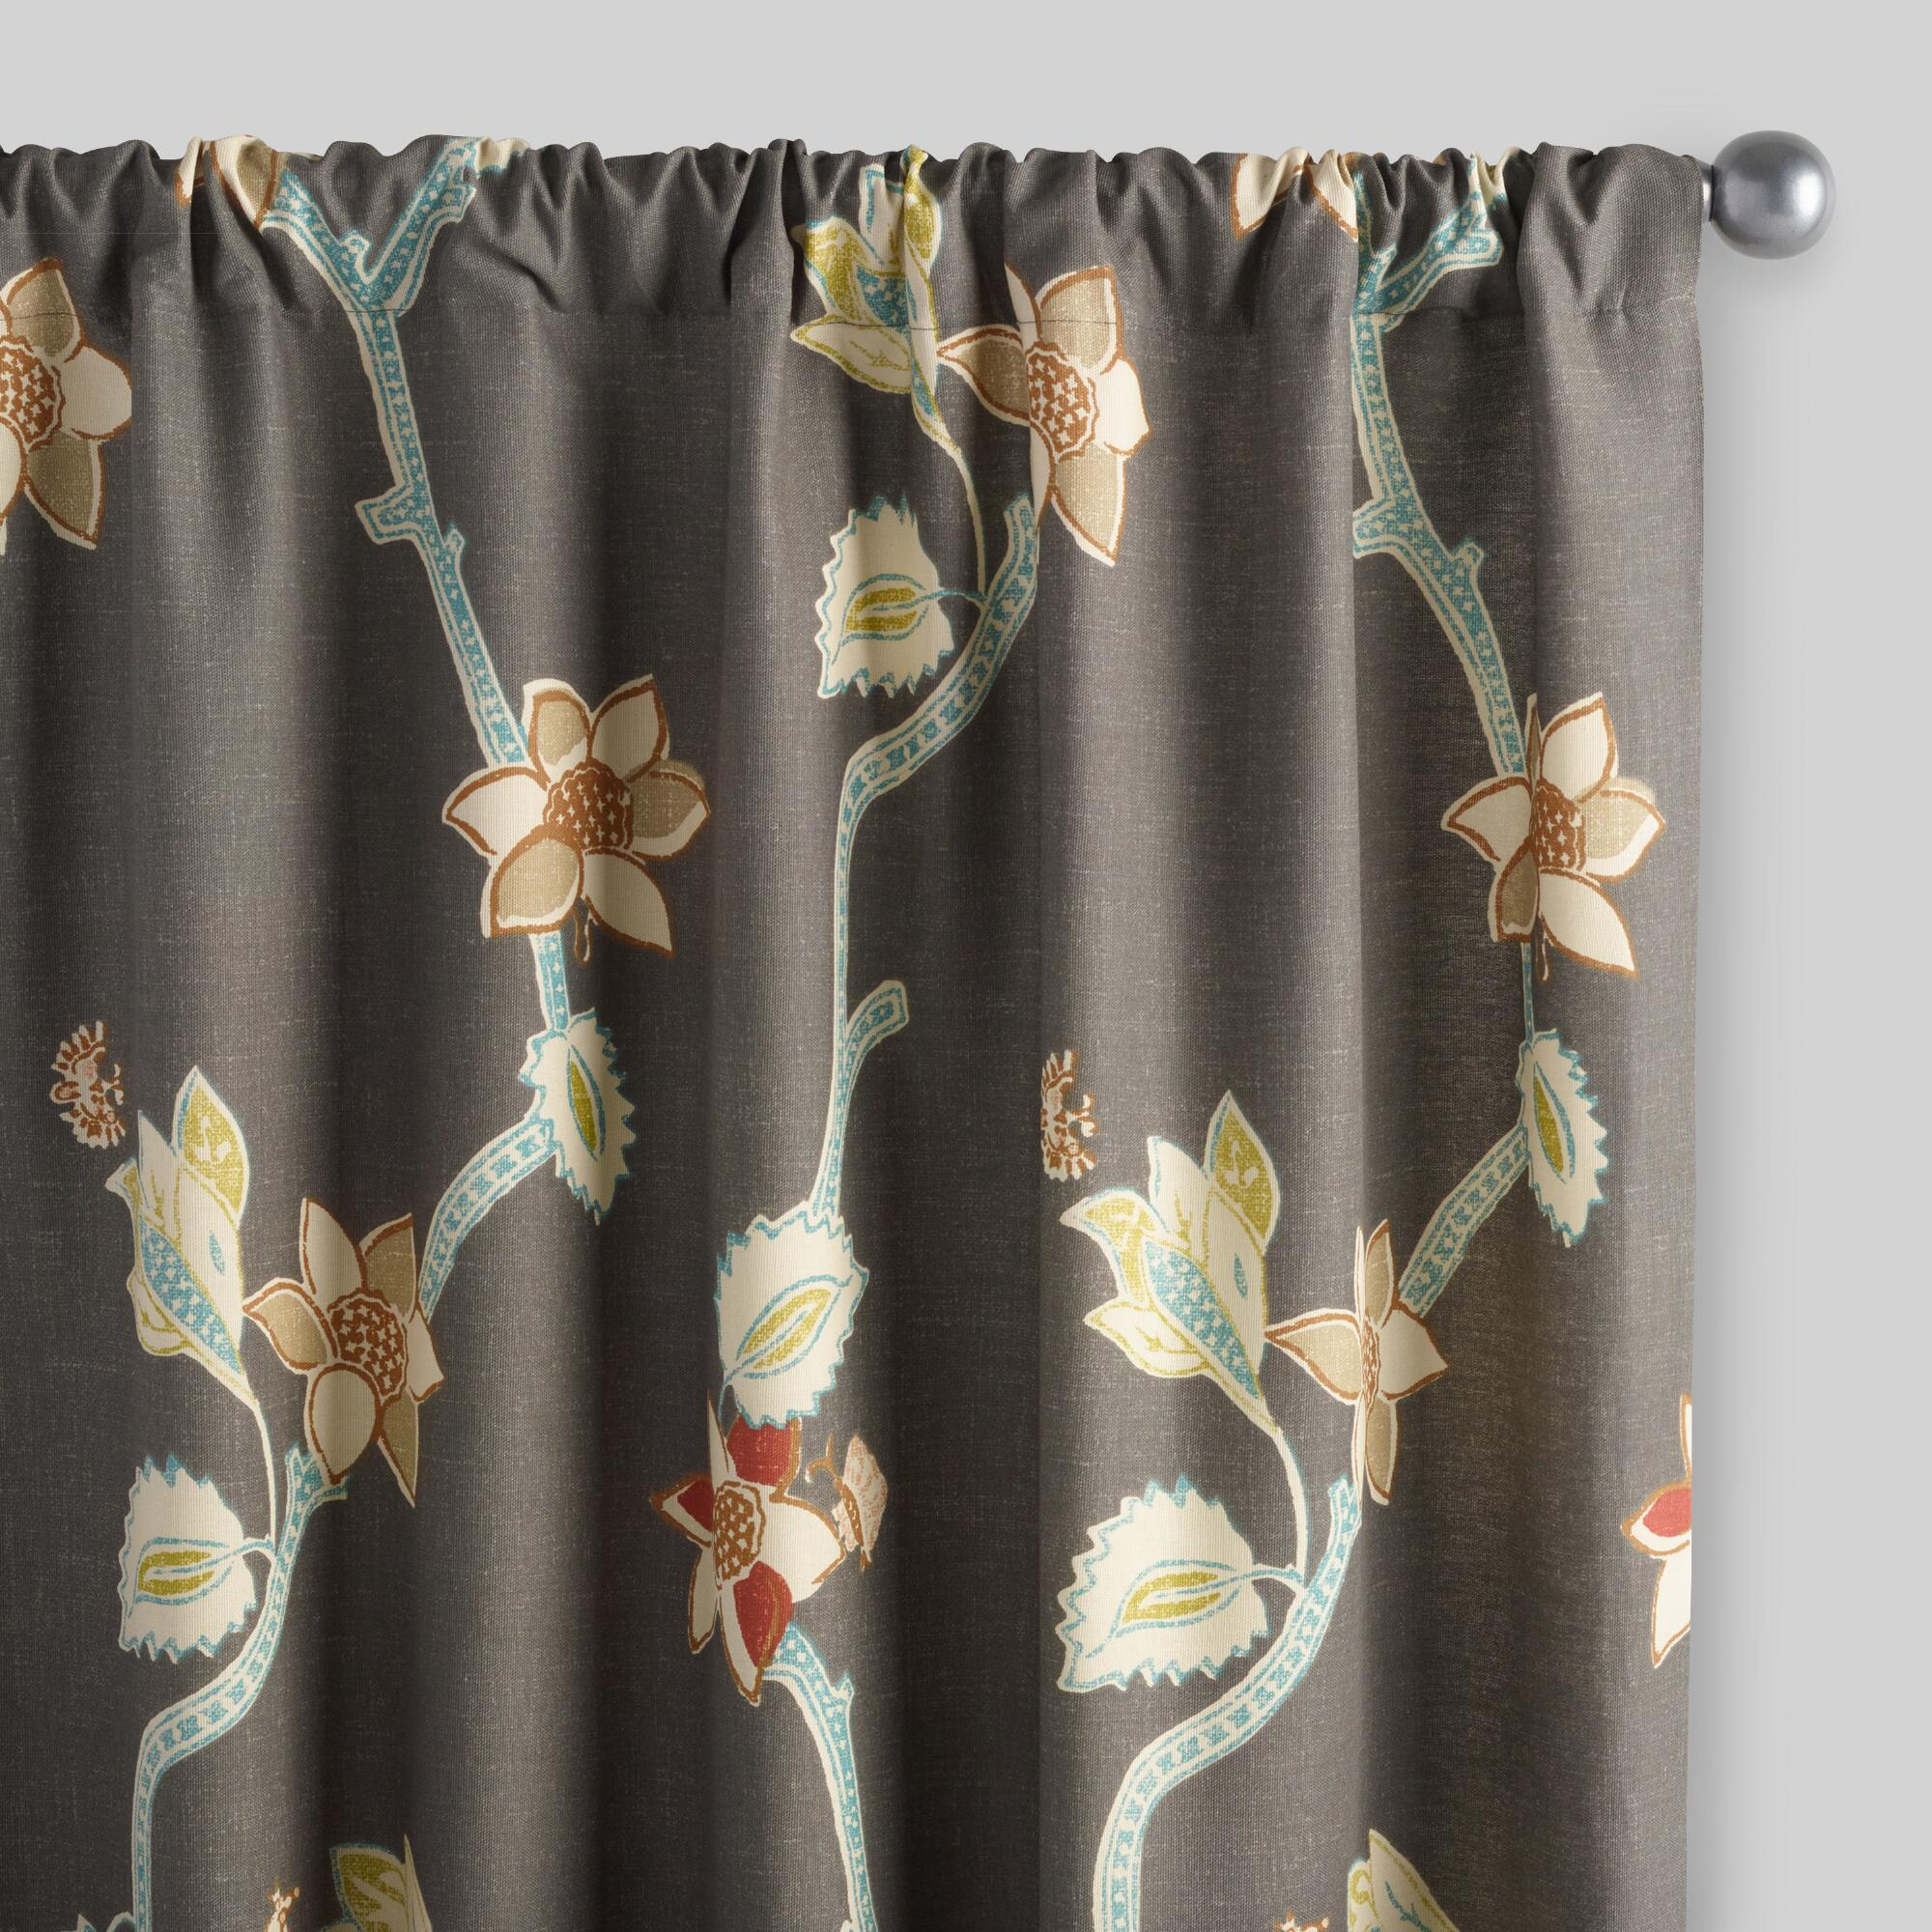 Moroccan curtains white - Bird Of Paradise Pakshi Curtains Set Of 2